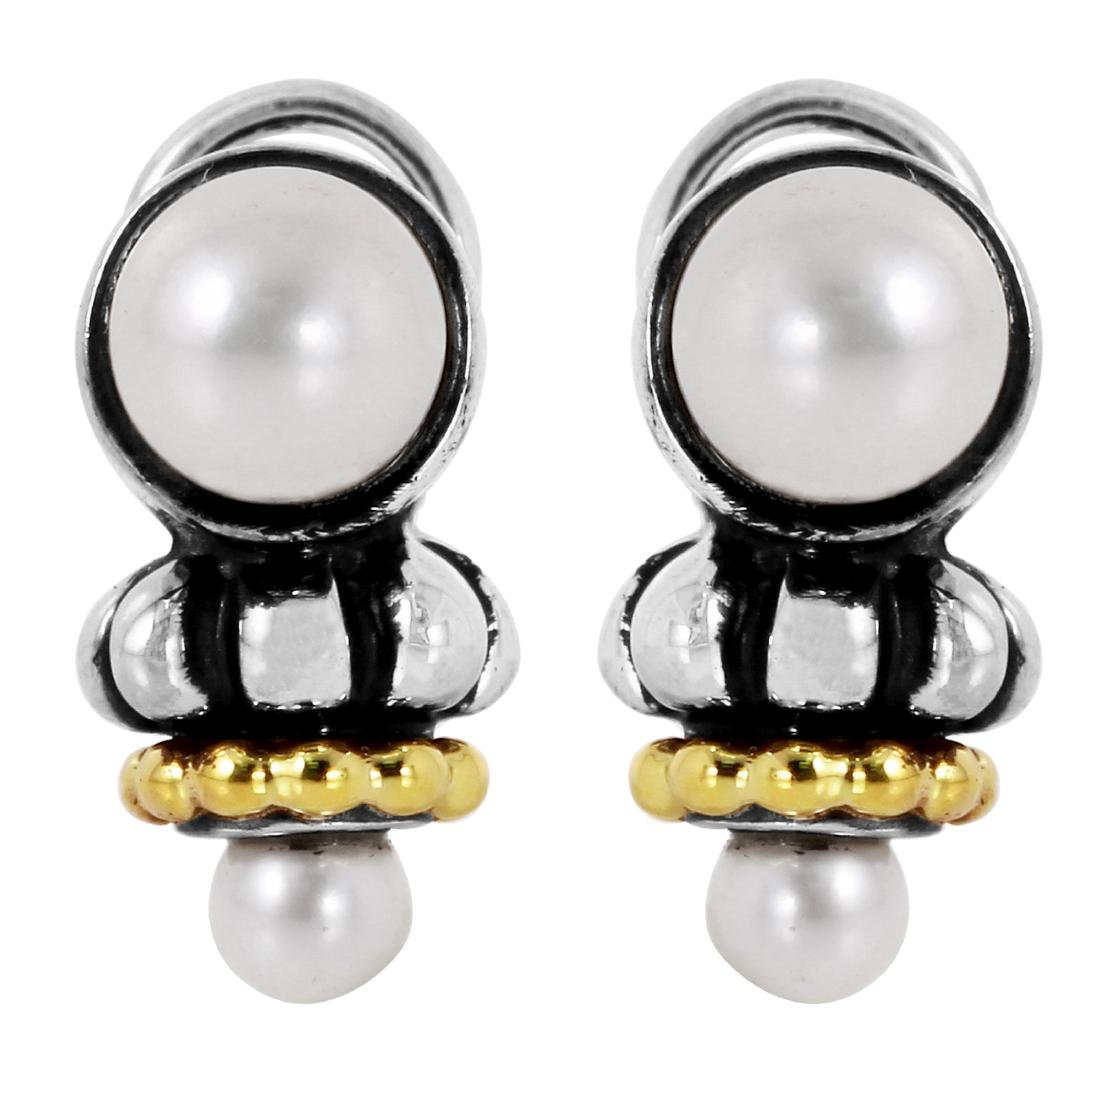 LAGOS Caviar Sterling Silver 18KT Gold Earrings